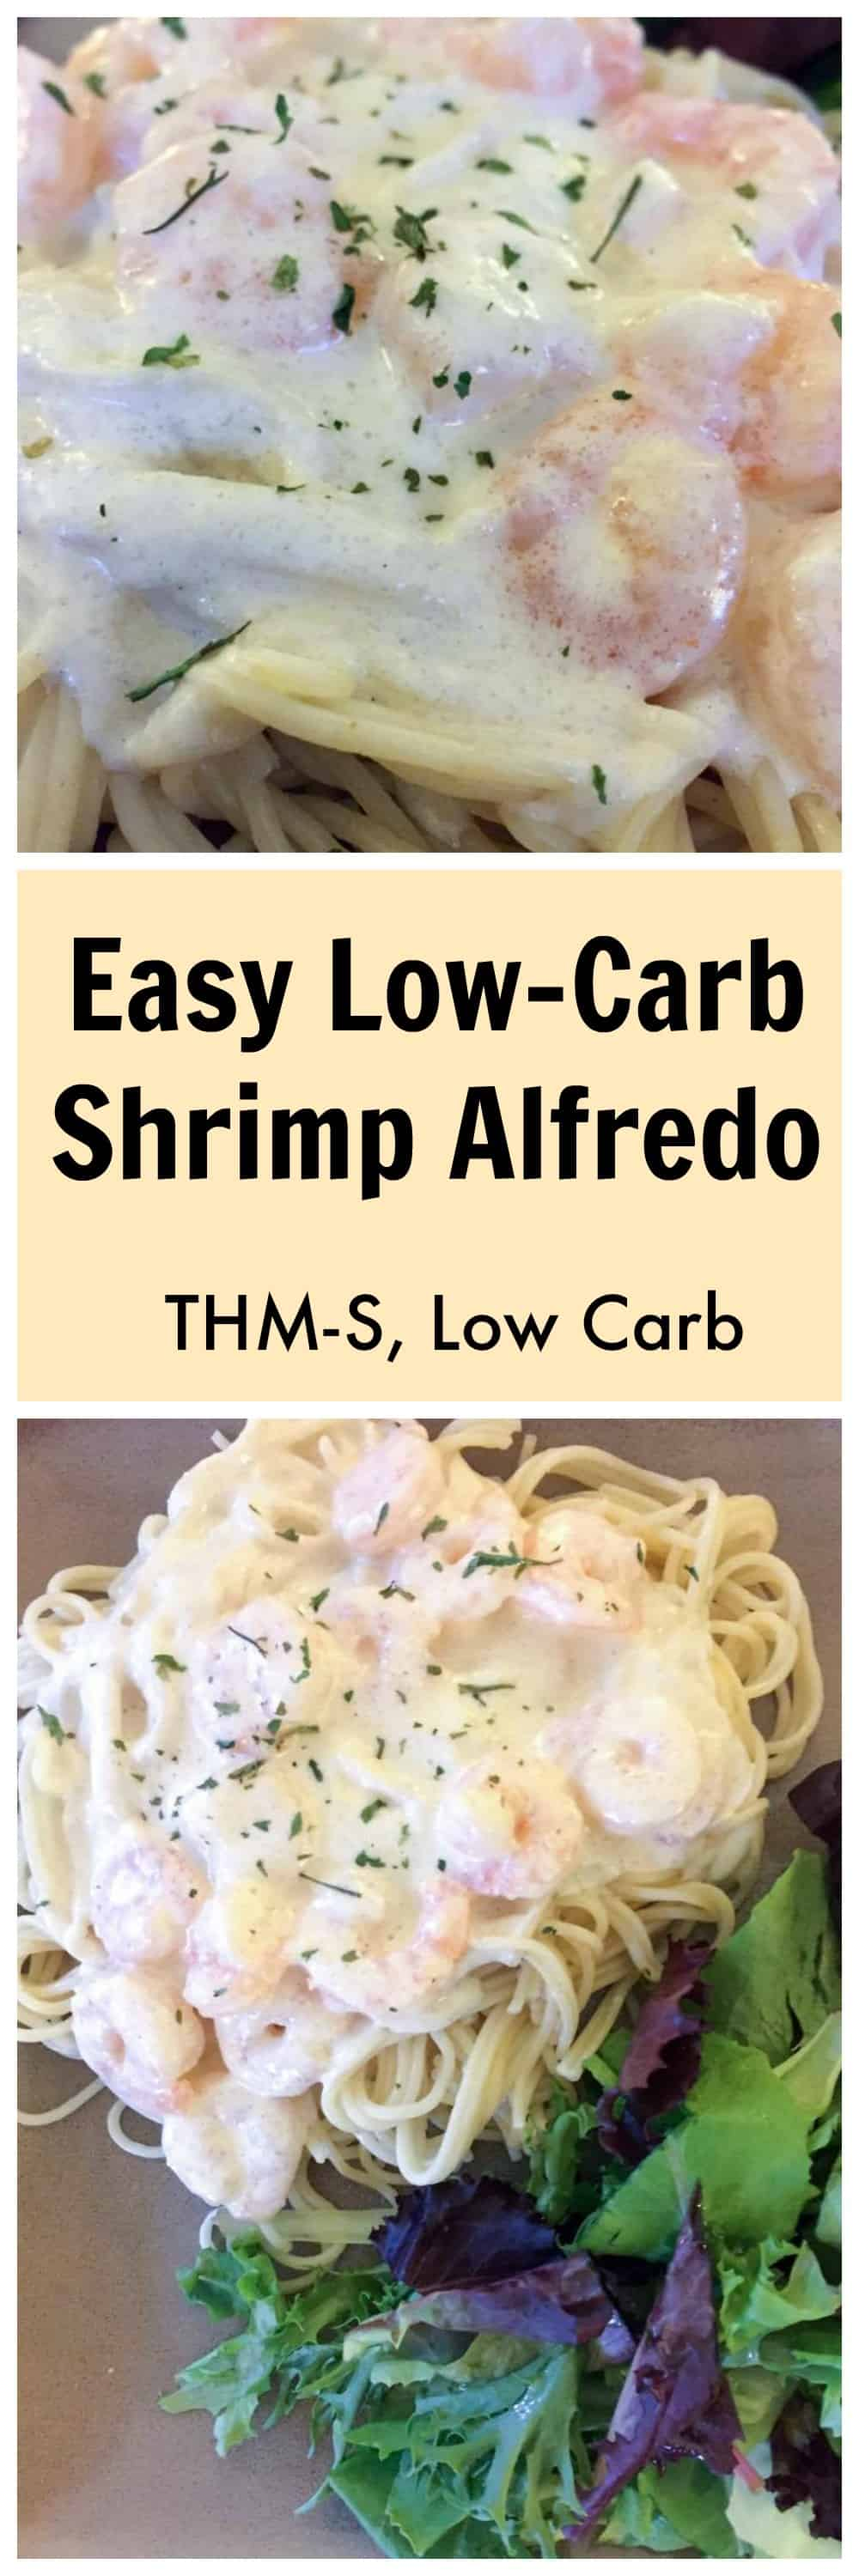 easy-low-carb-shrimp-alfredo